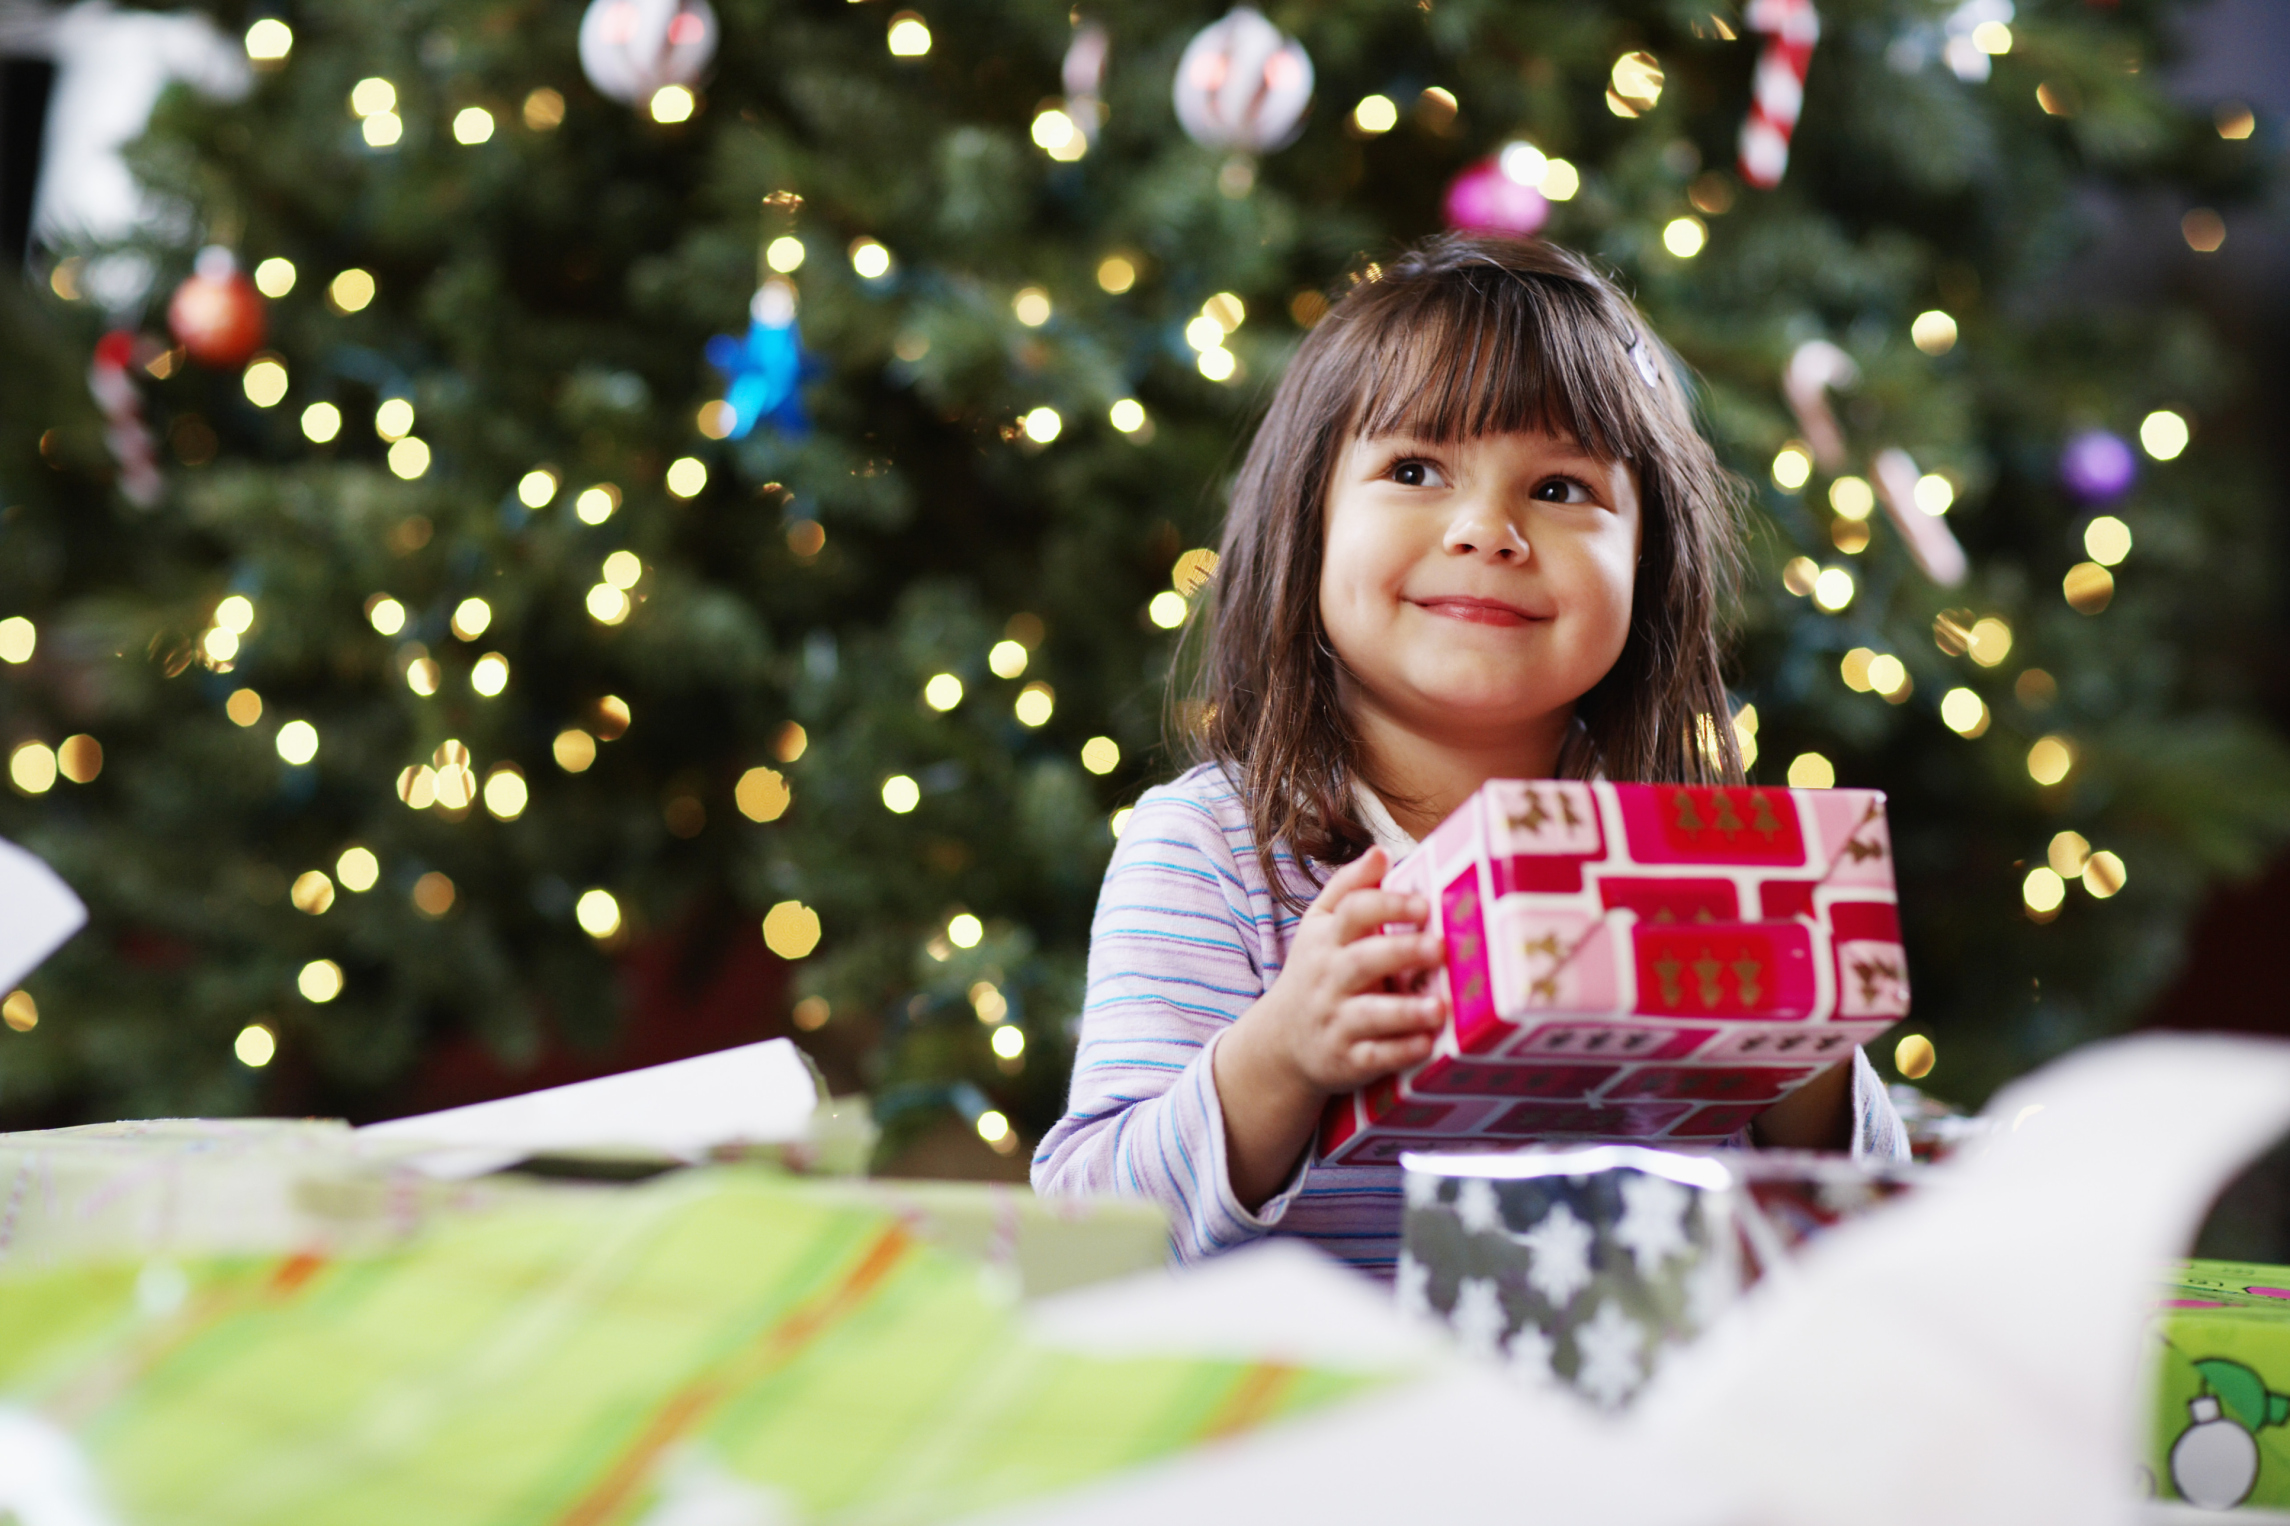 Christmas Ideas For Kids Gifts.The Best Christmas Gift Ideas For Kids In 2018 Bits Of Days